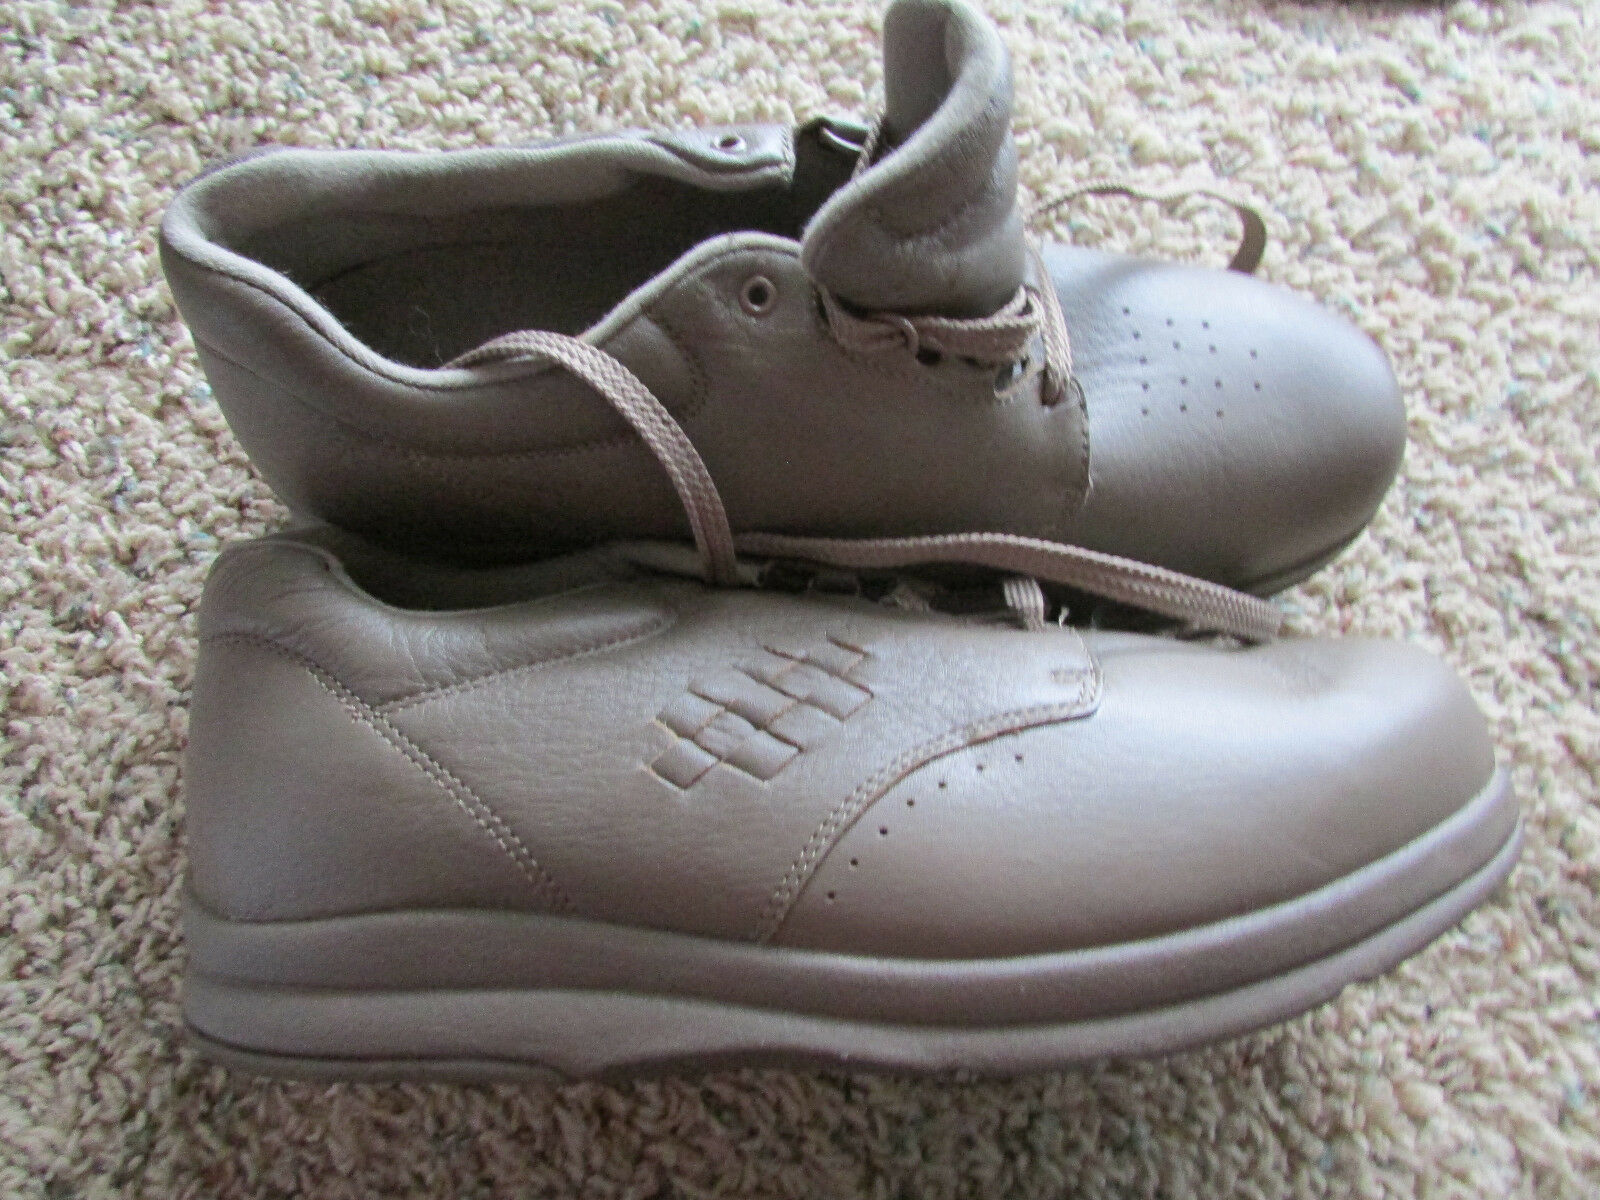 PW MINOR THERAPEUTIC DIABETIC ORTHODIC SHOES Uomo 12W TAUPE LEATHER NEW DISPLAY